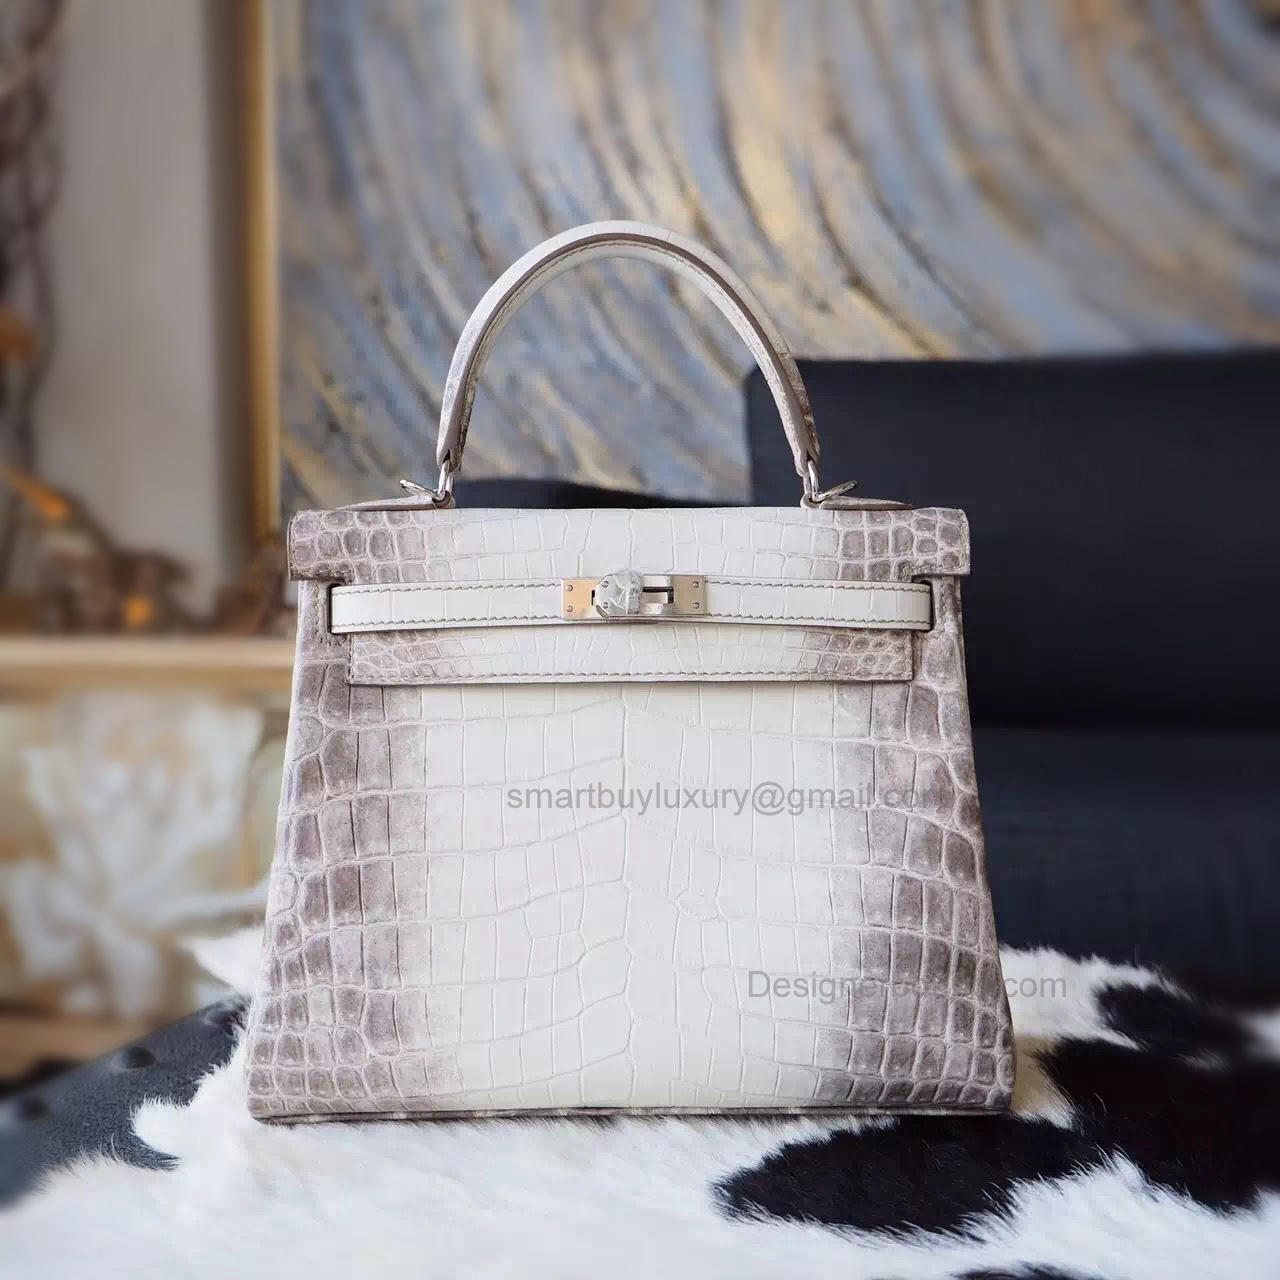 Replica Hermes Kelly 25 Handmade Bag in Himalaya Croc SHW